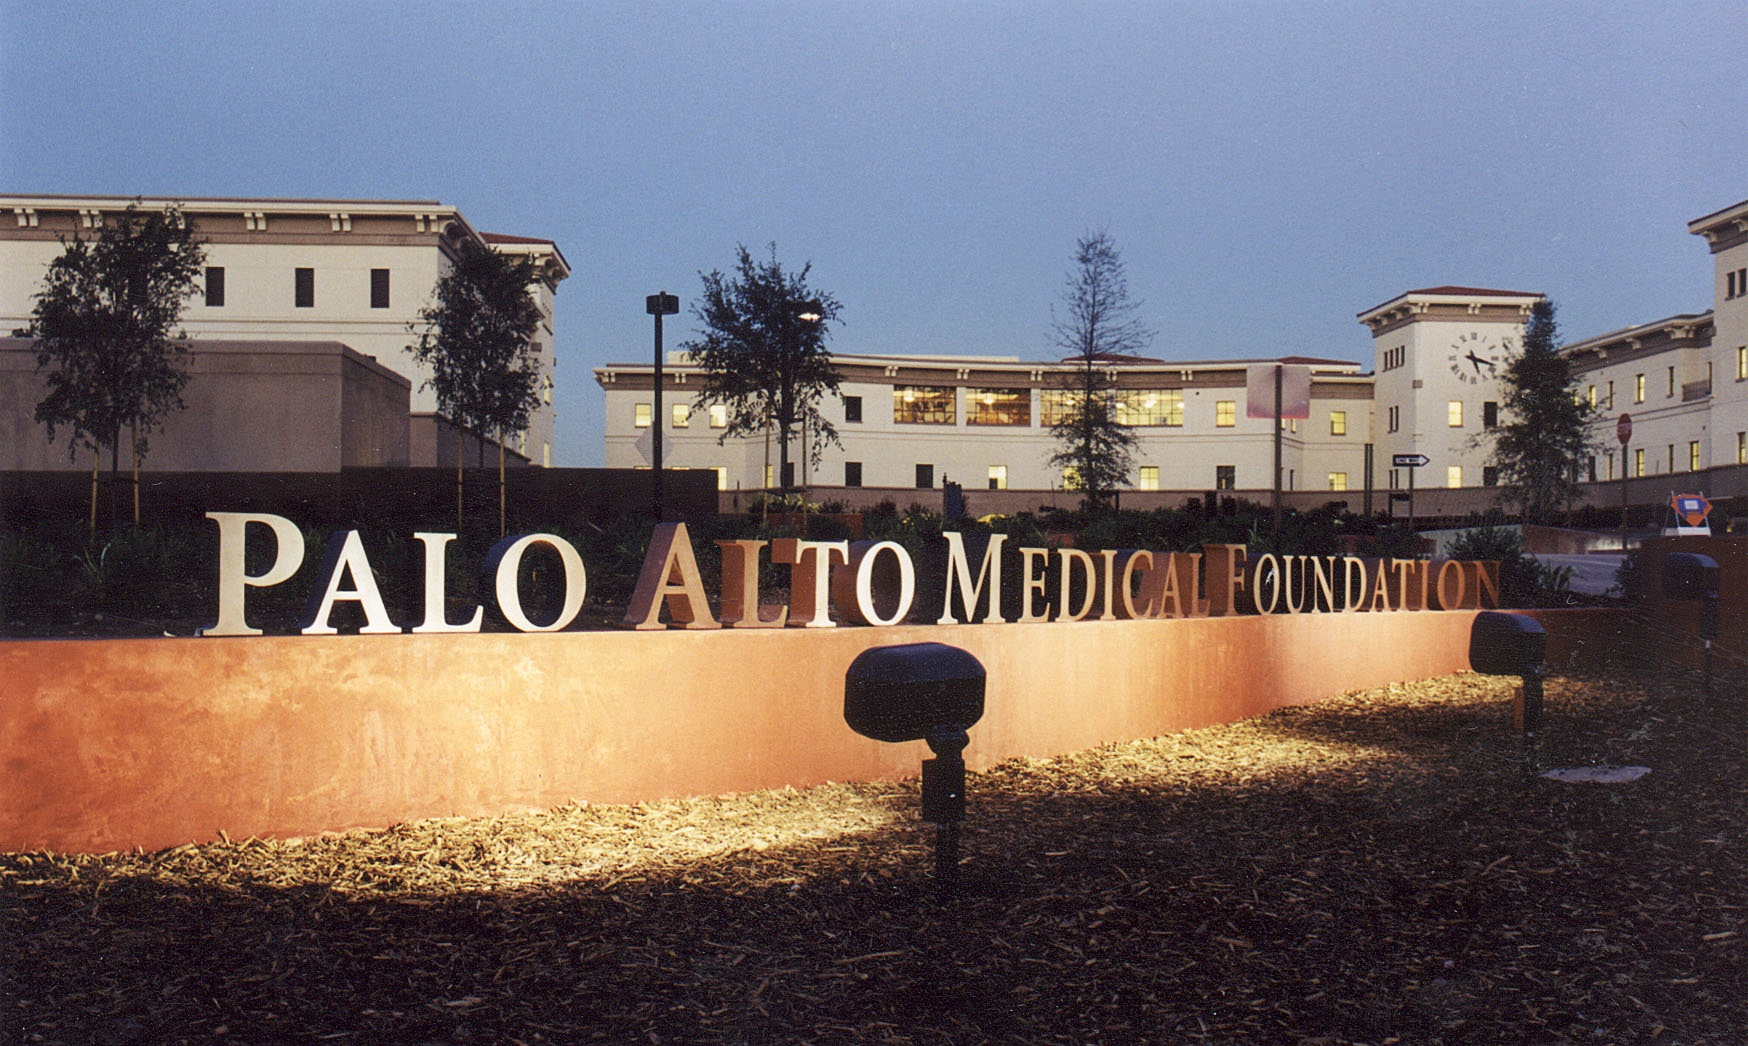 Lit up building sign for the Palo Alto Medical Foundation.